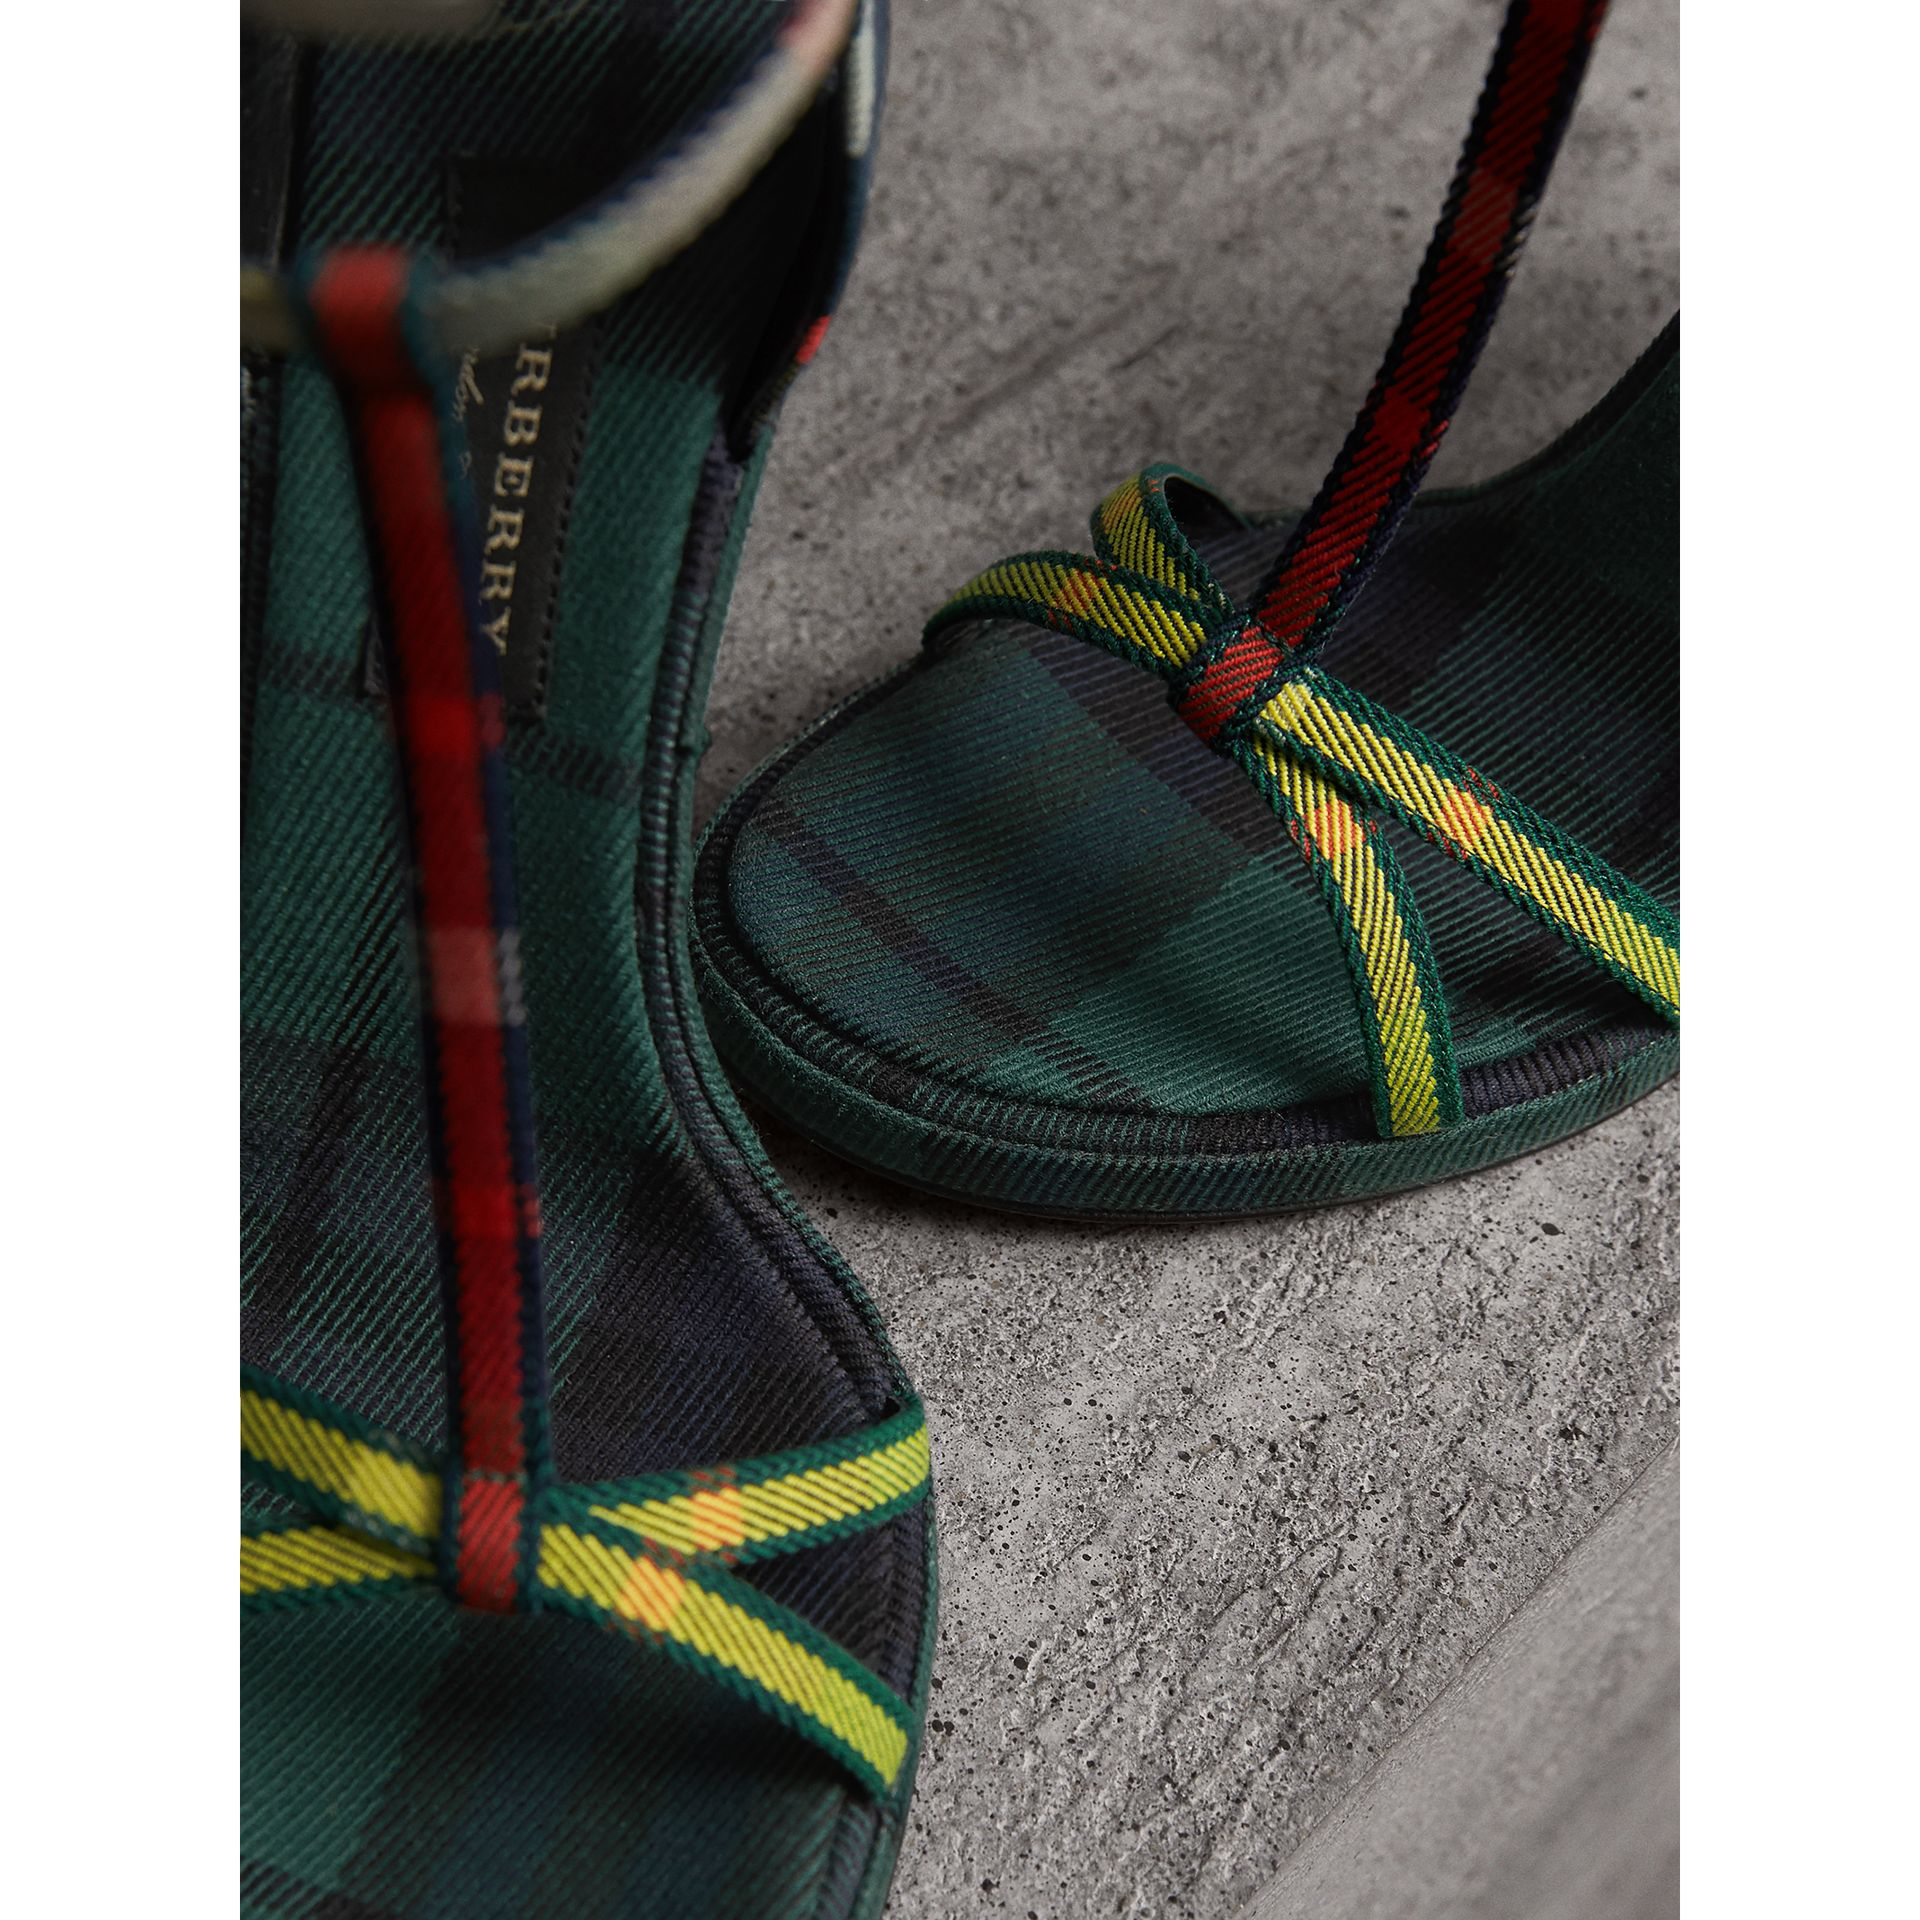 Tartan Cotton High Cone-heel Sandals in Forest Green - Women | Burberry United Kingdom - gallery image 2